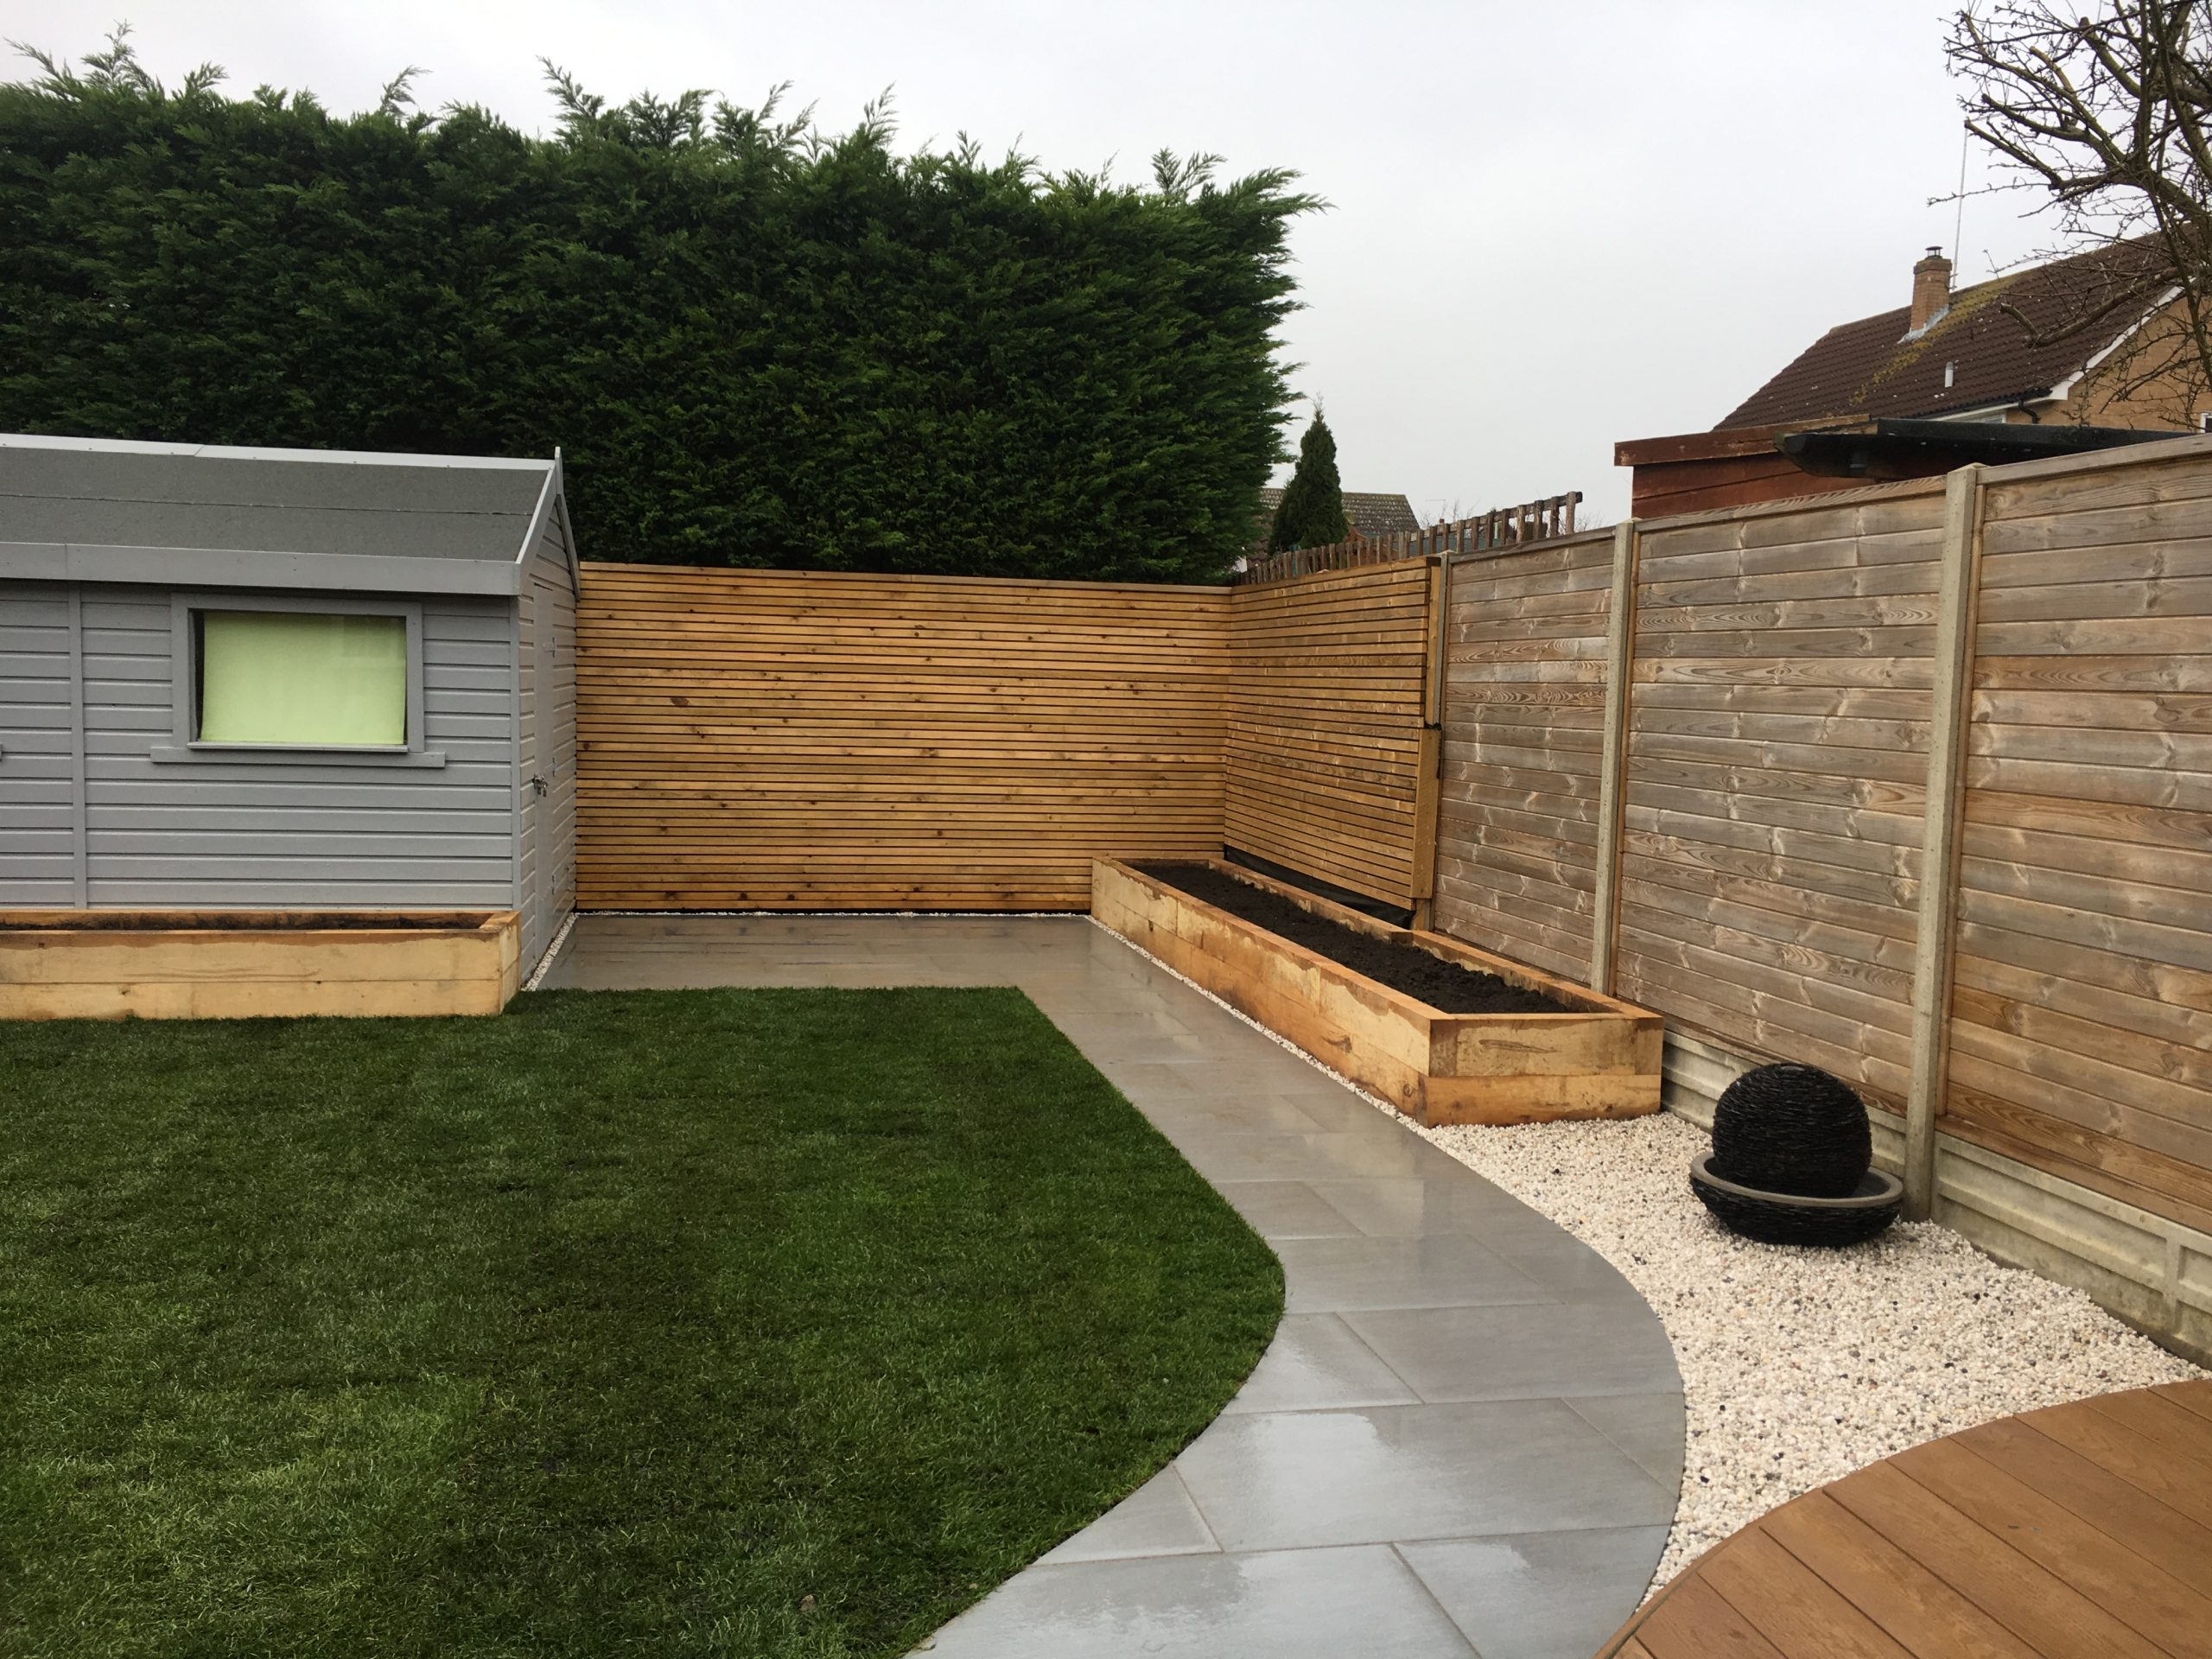 Landscaping Cambridge - Millboard decking and patio